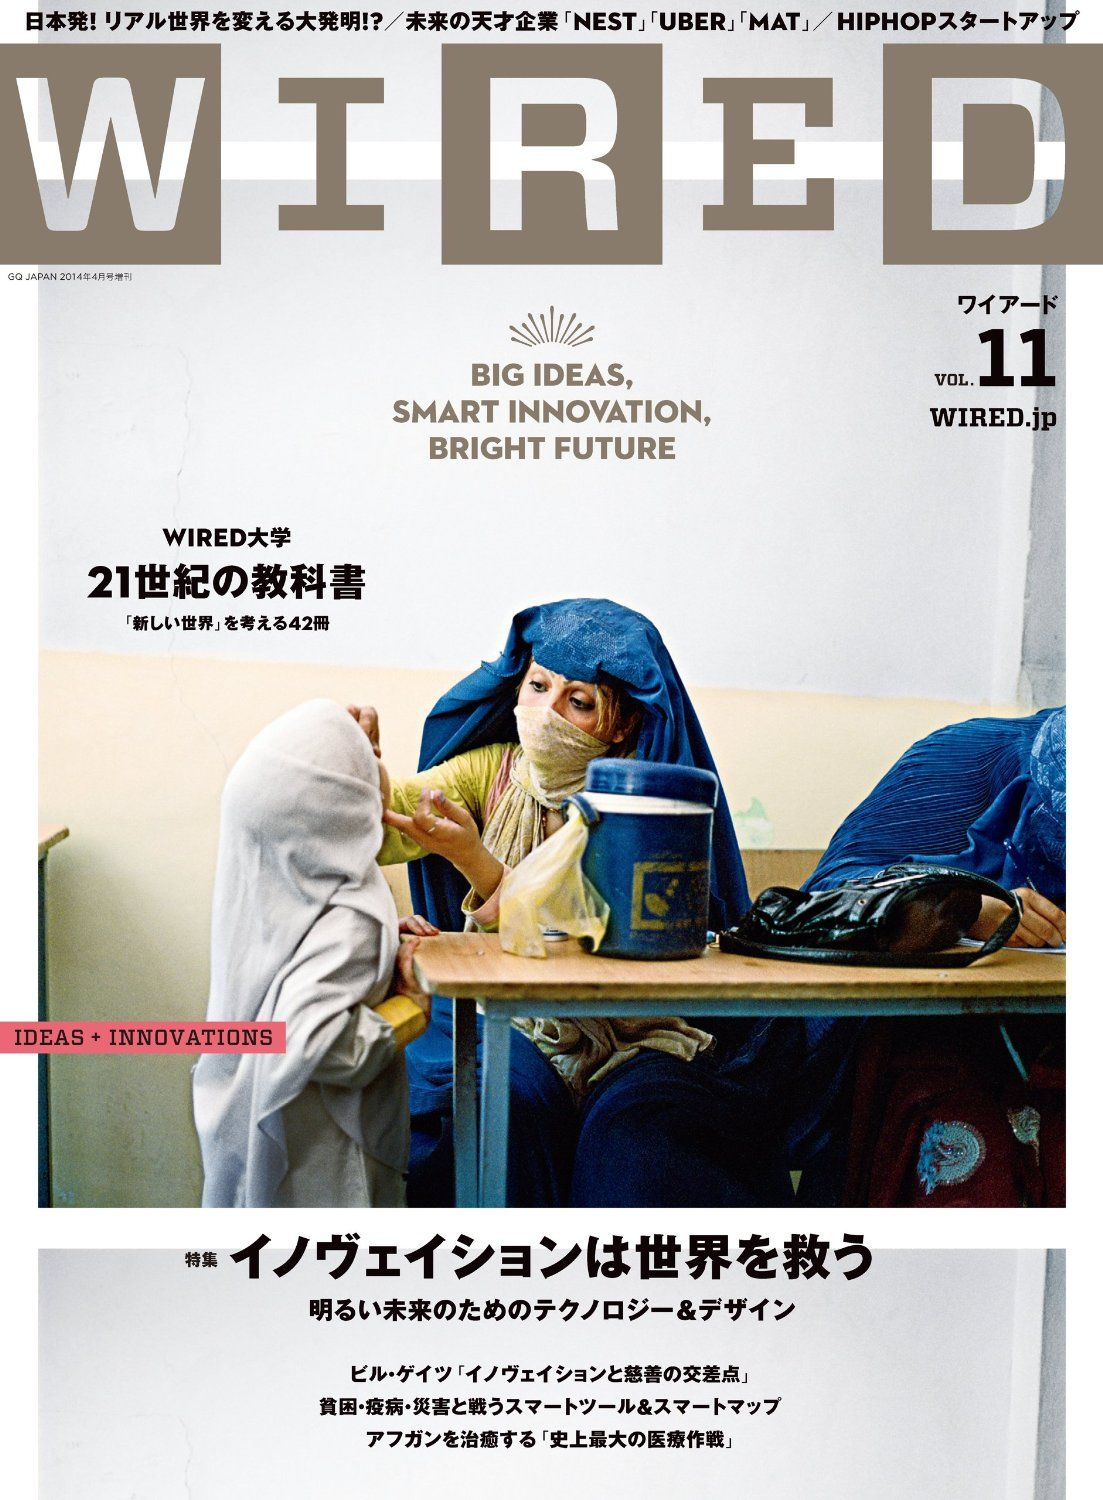 Amazon.co.jp: WIRED (Wired) VOL.11 [magazine] e-book: WIRED ...